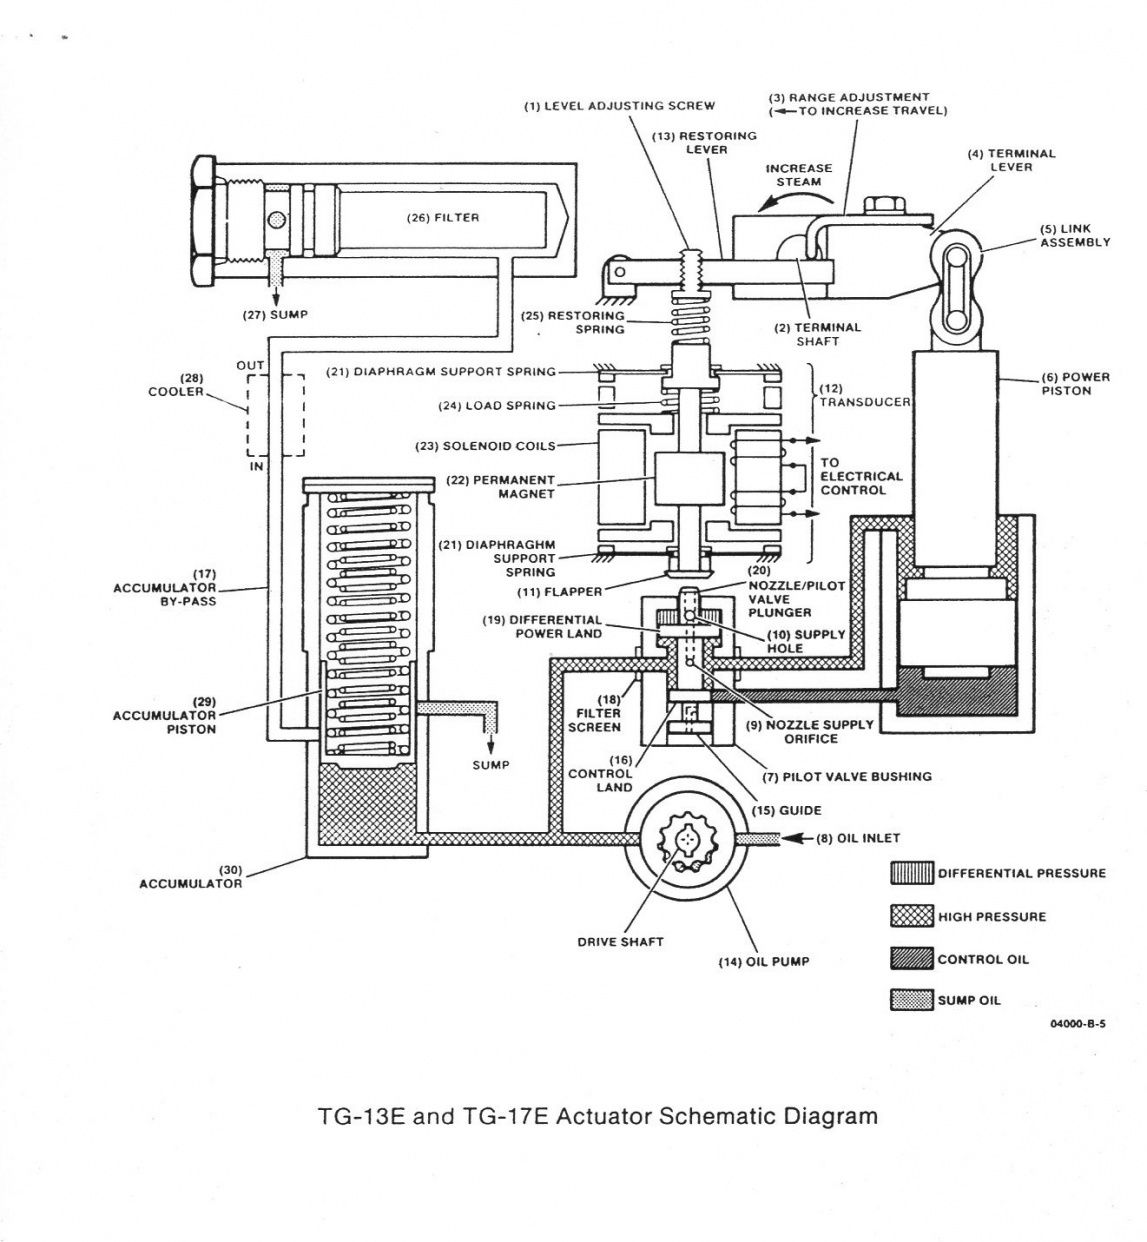 Woodward Type Tg 13 Control Schematic Diagram